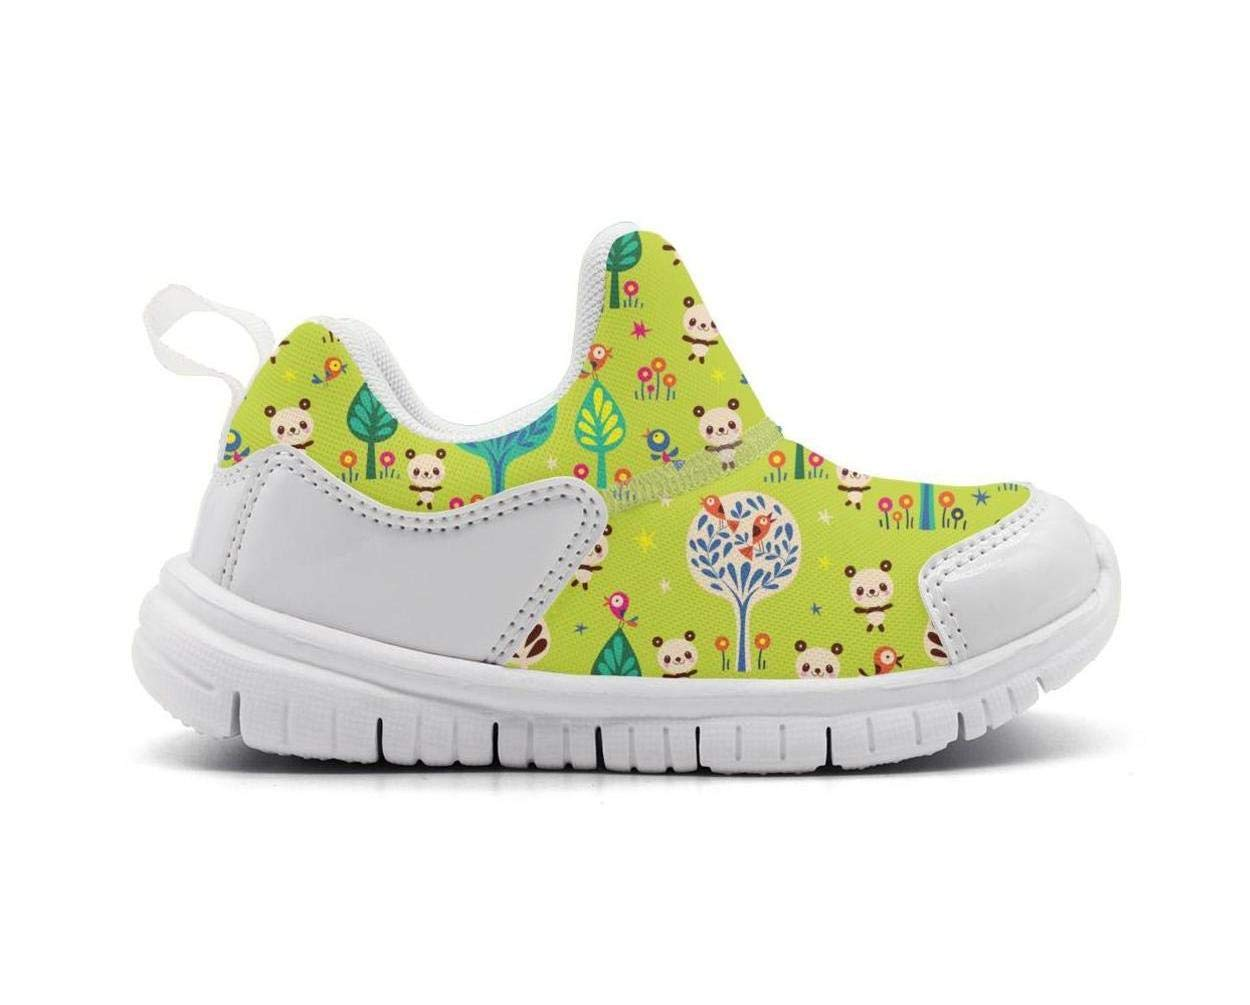 ONEYUAN Children Green Panda Bears in Forest Kid Casual Lightweight Sport Shoes Sneakers Walking Athletic Shoes